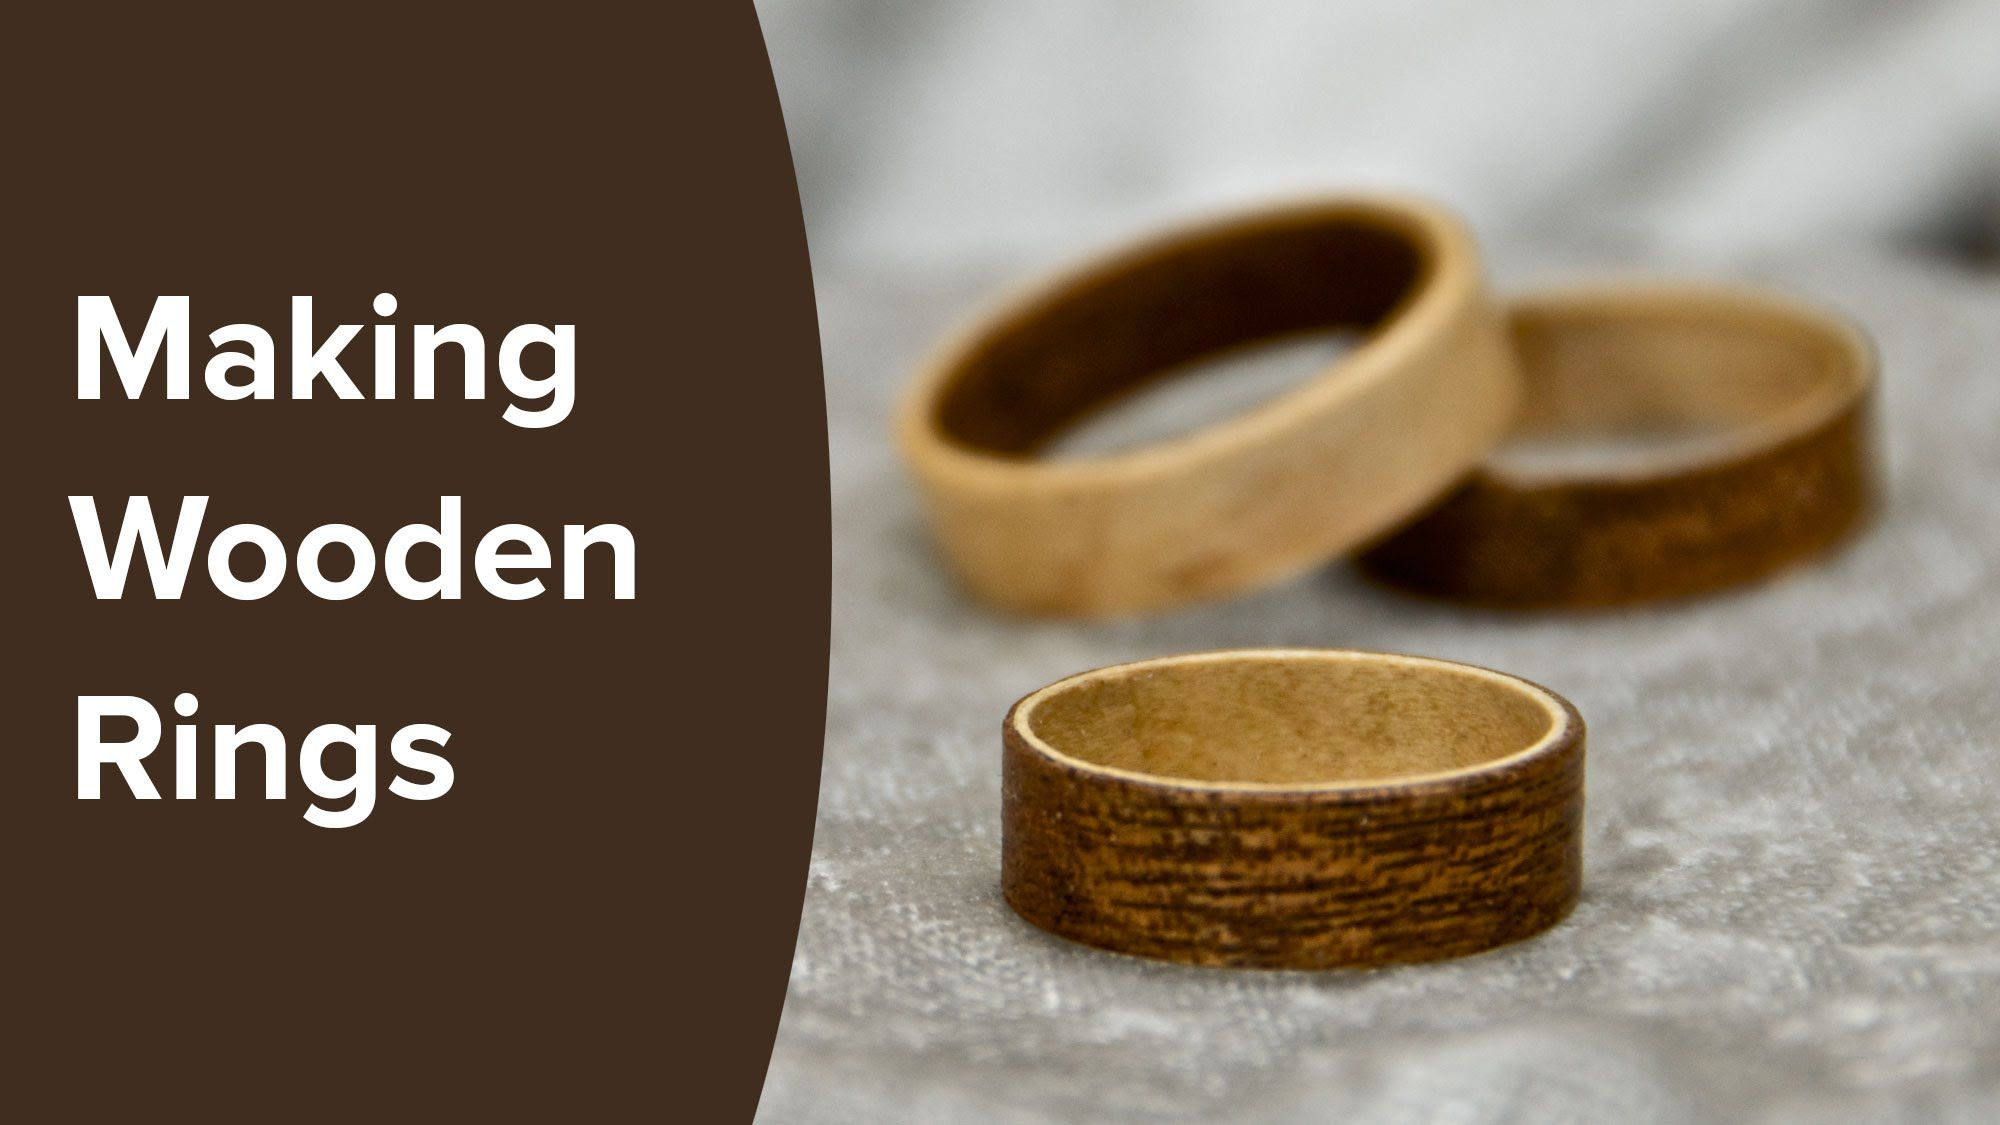 I Show You Step By Step On How To Make These Beautiful Wooden Rings From Sheets Of Veneer Using Bent Lamination Otherwi Wooden Rings Wood Rings Wood Rings Diy